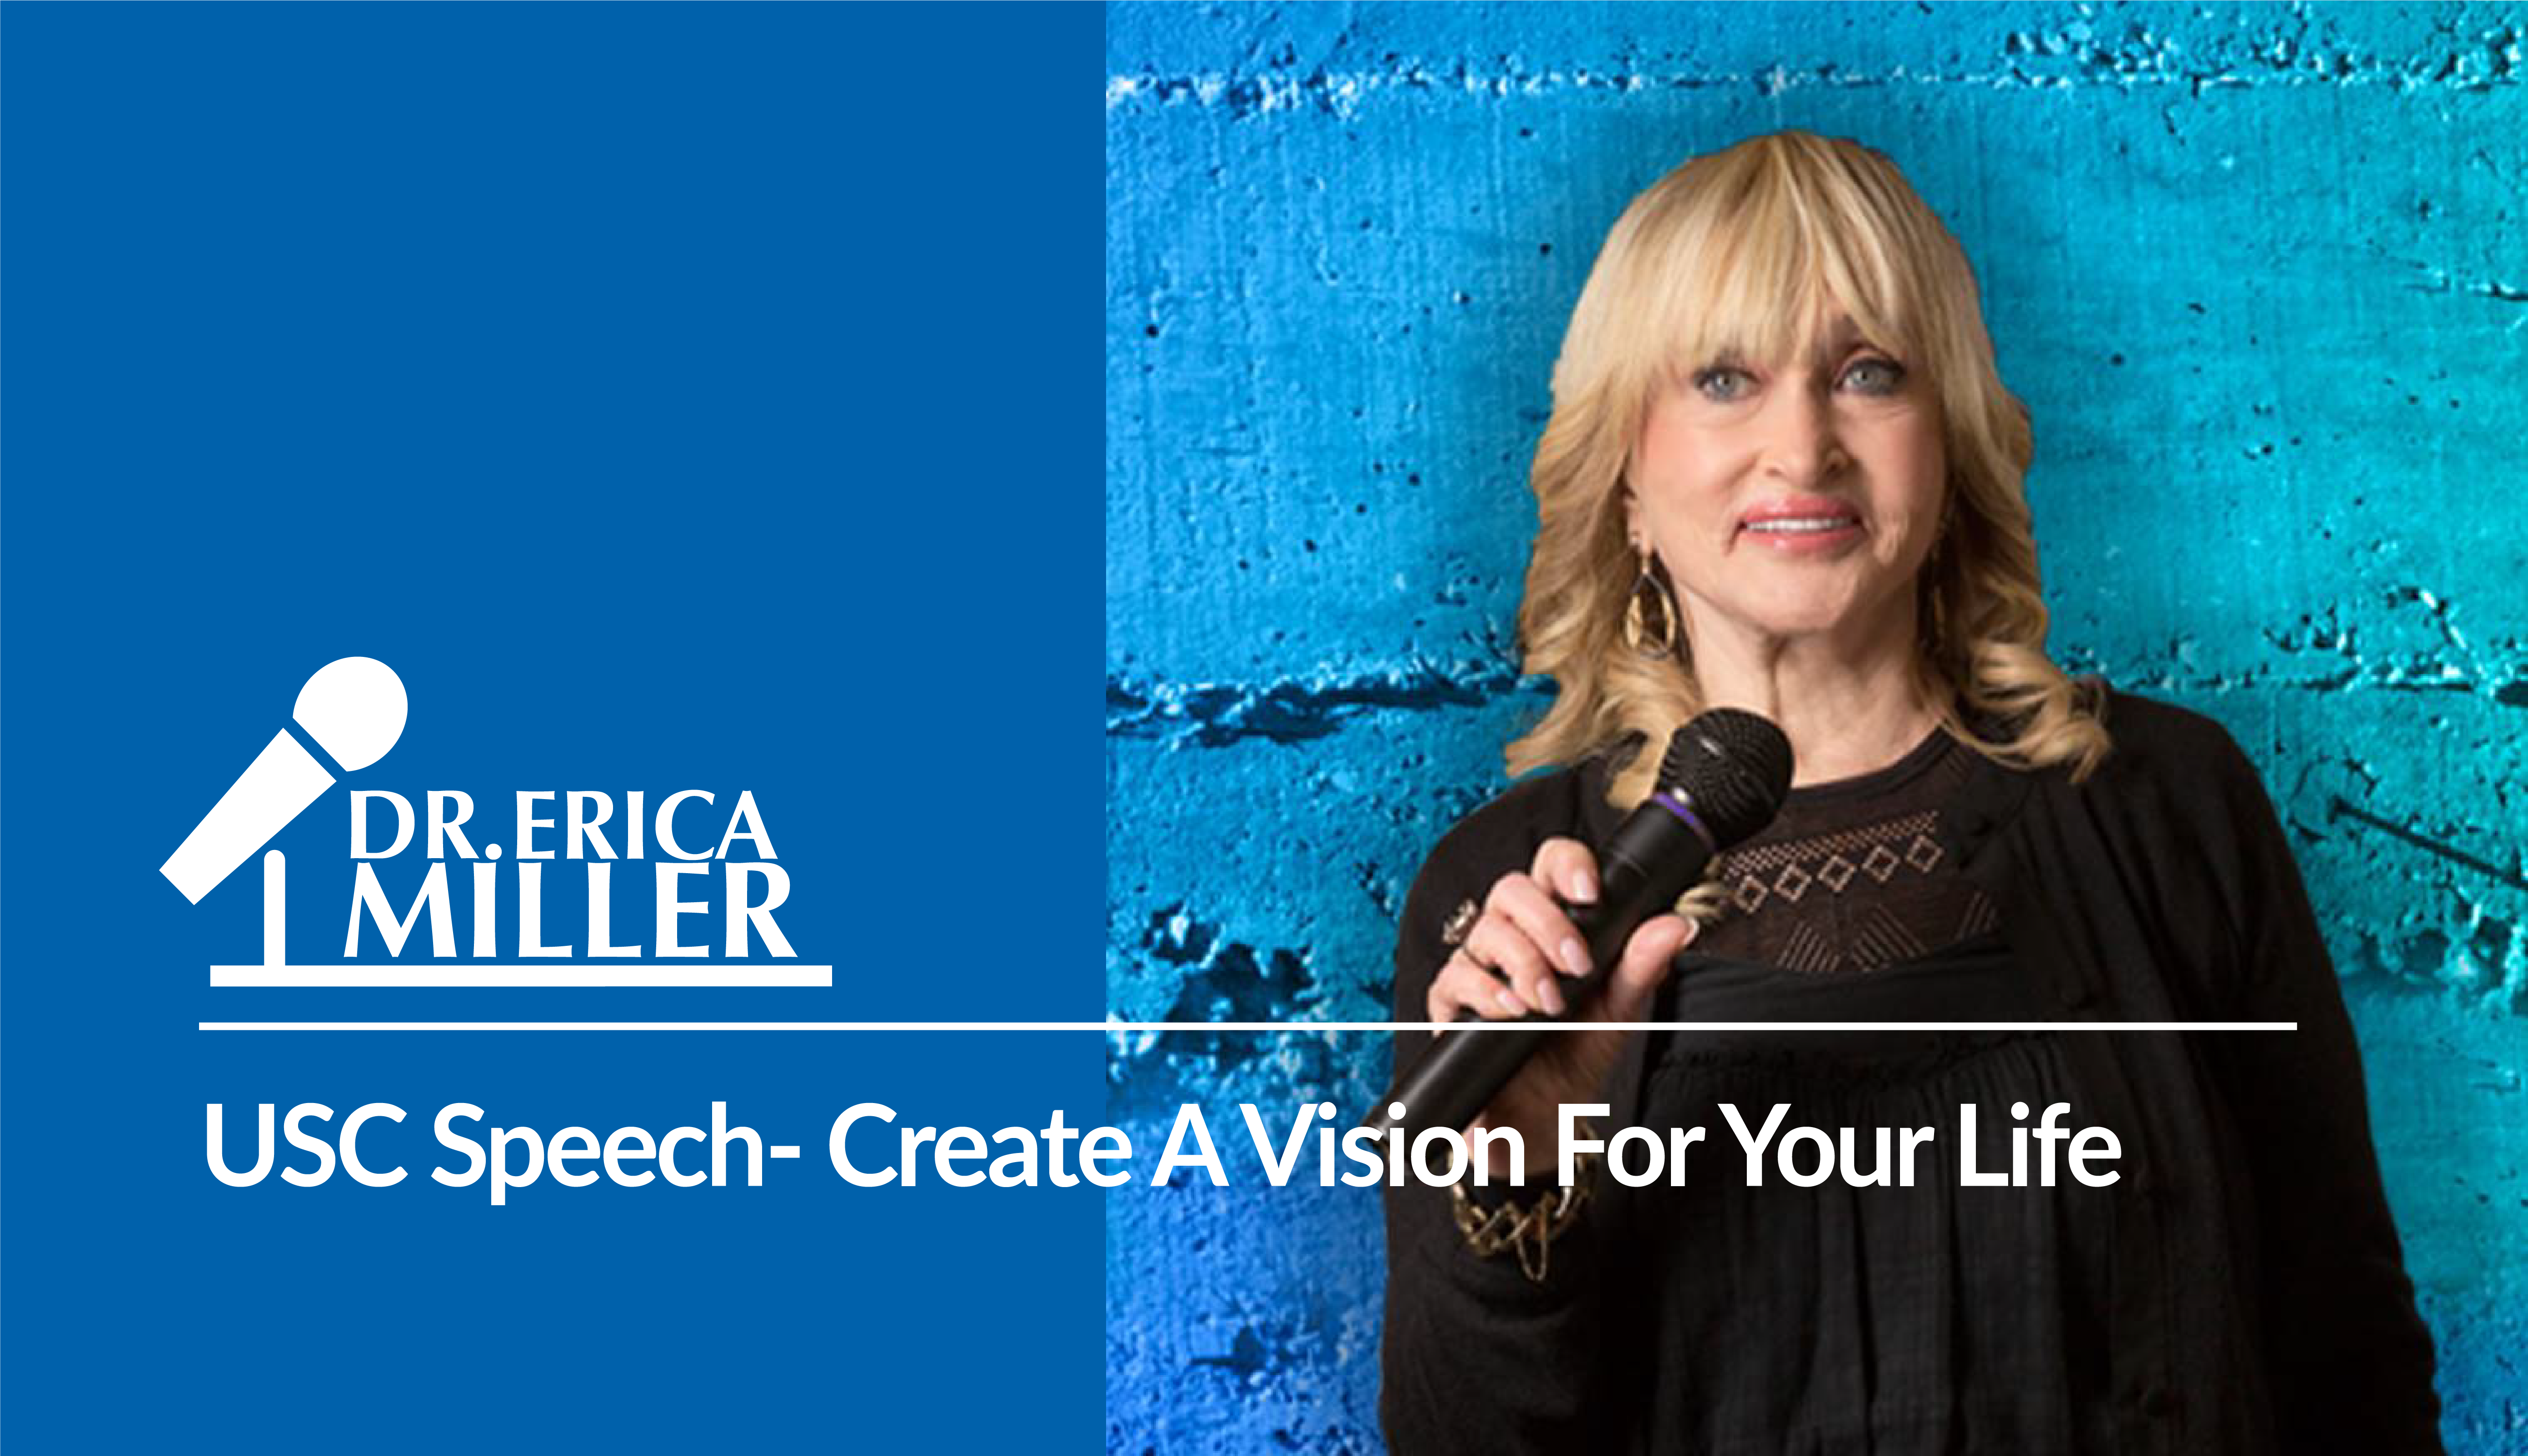 USC Speech- Create A Vision For Your Life